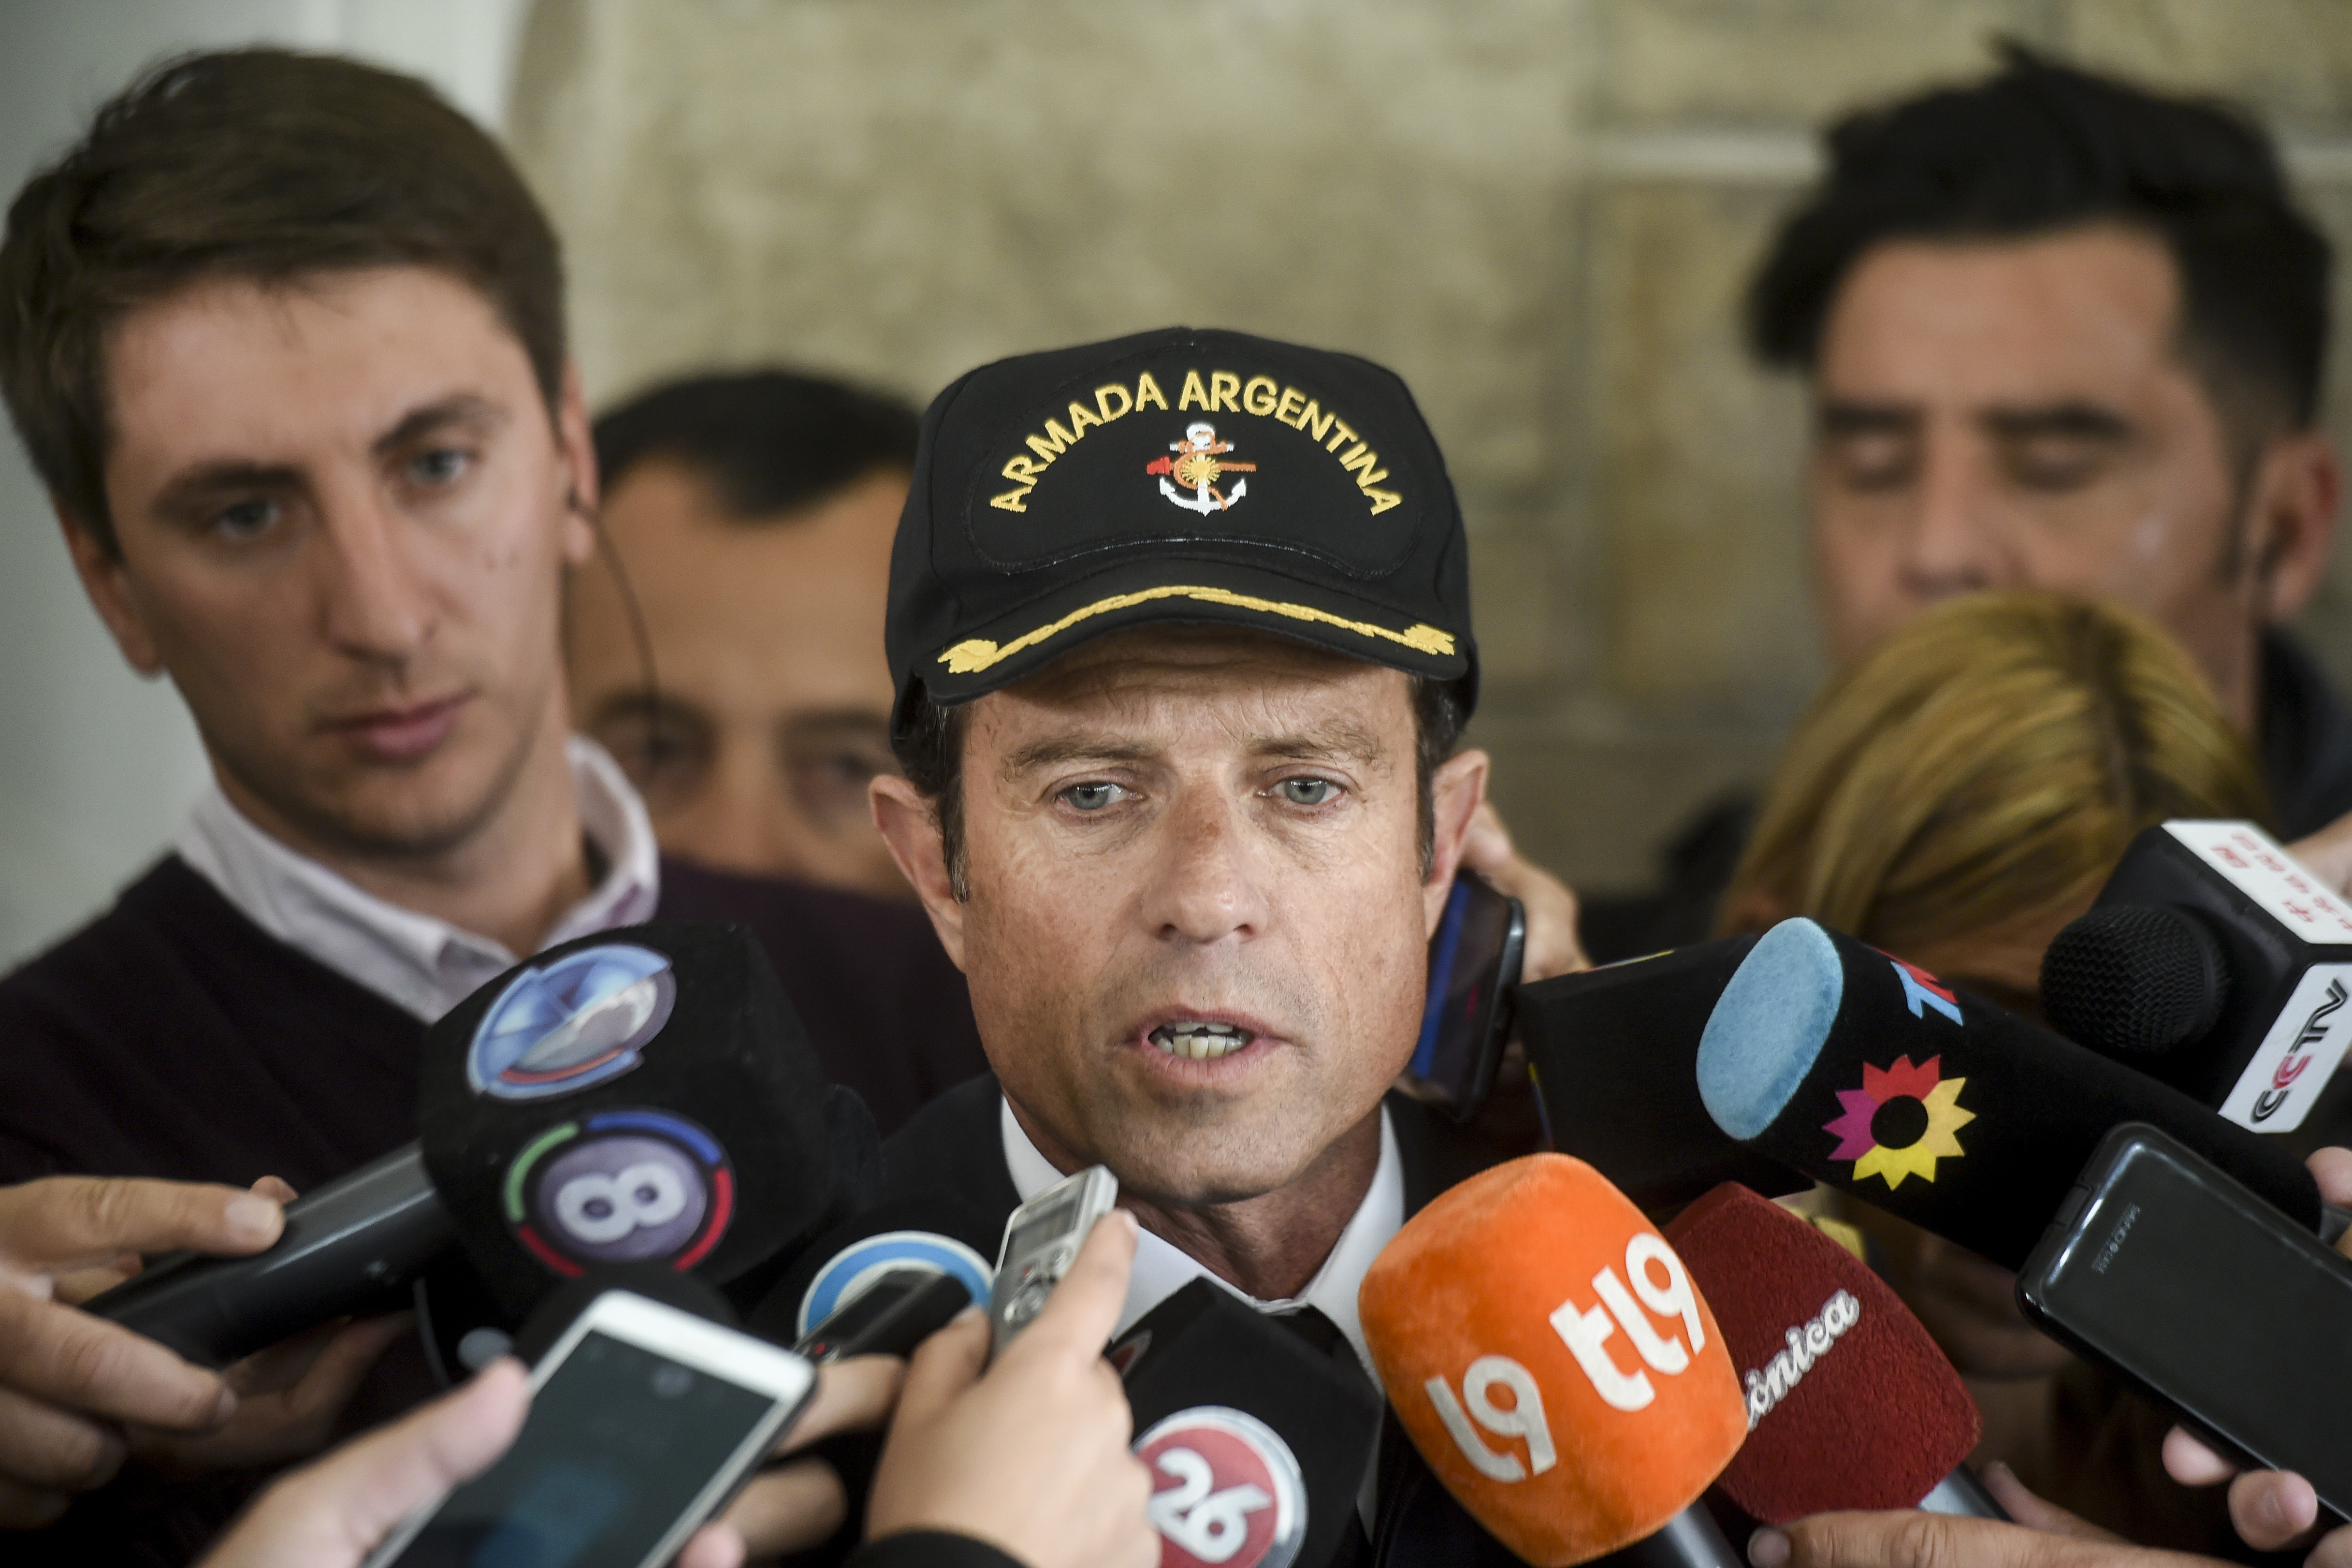 Warship captain Gabriel Galeazzi speaks during a press conference at Argentina's Navy base in Mar del Plata, on the Atlantic coast south of Buenos Aires, on November 20, 2017.